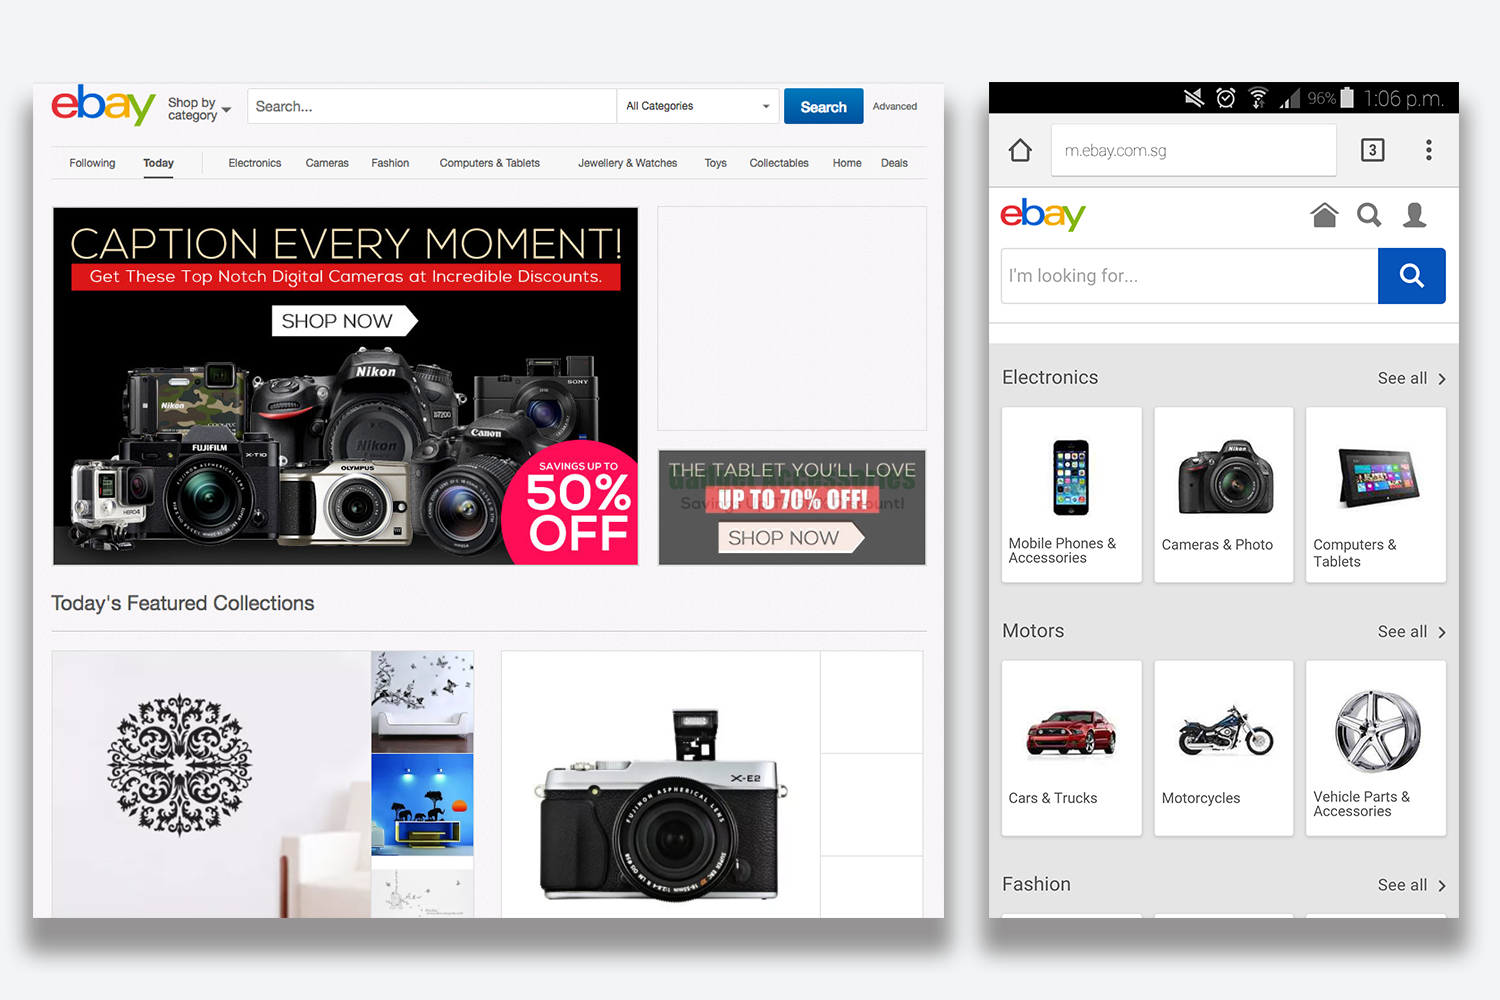 Mobile_eBay_page_is_a_m(Dot)_page_example